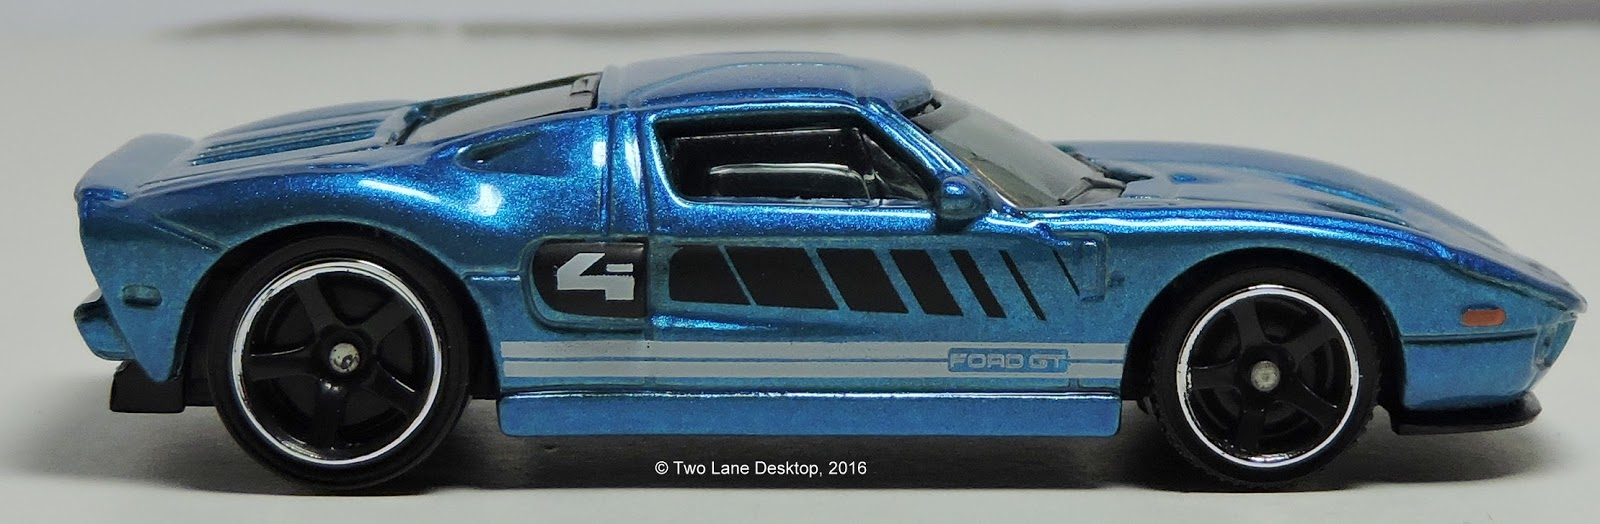 Two Lane Desktop: Comparison: Matchbox 2016 Exotics 5-pack